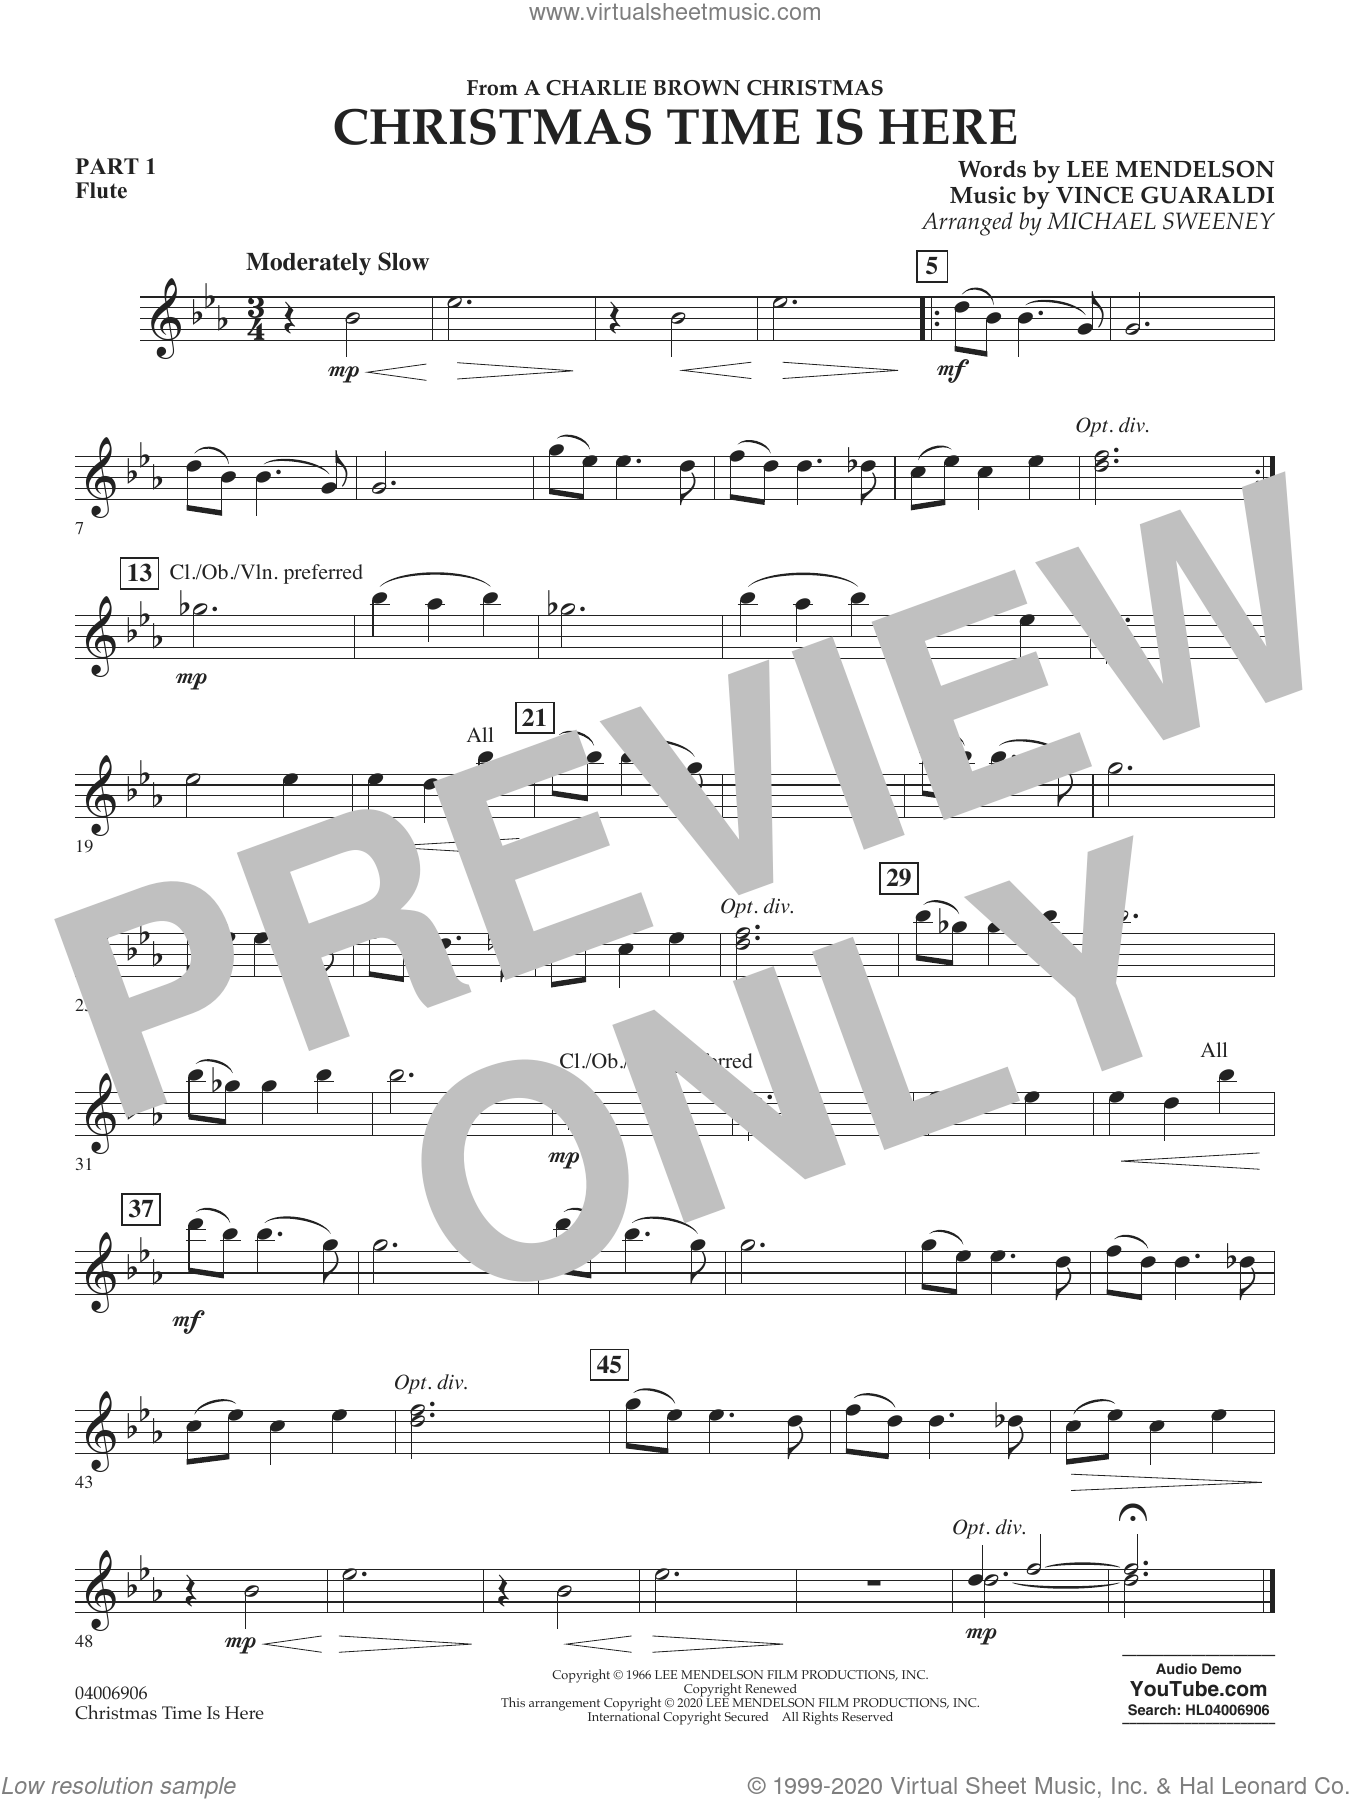 Christmas Time Is Here (arr. Michael Sweeney) sheet music for concert band (pt.1 - flute) by Vince Guaraldi, Michael Sweeney and Lee Mendelson, intermediate skill level